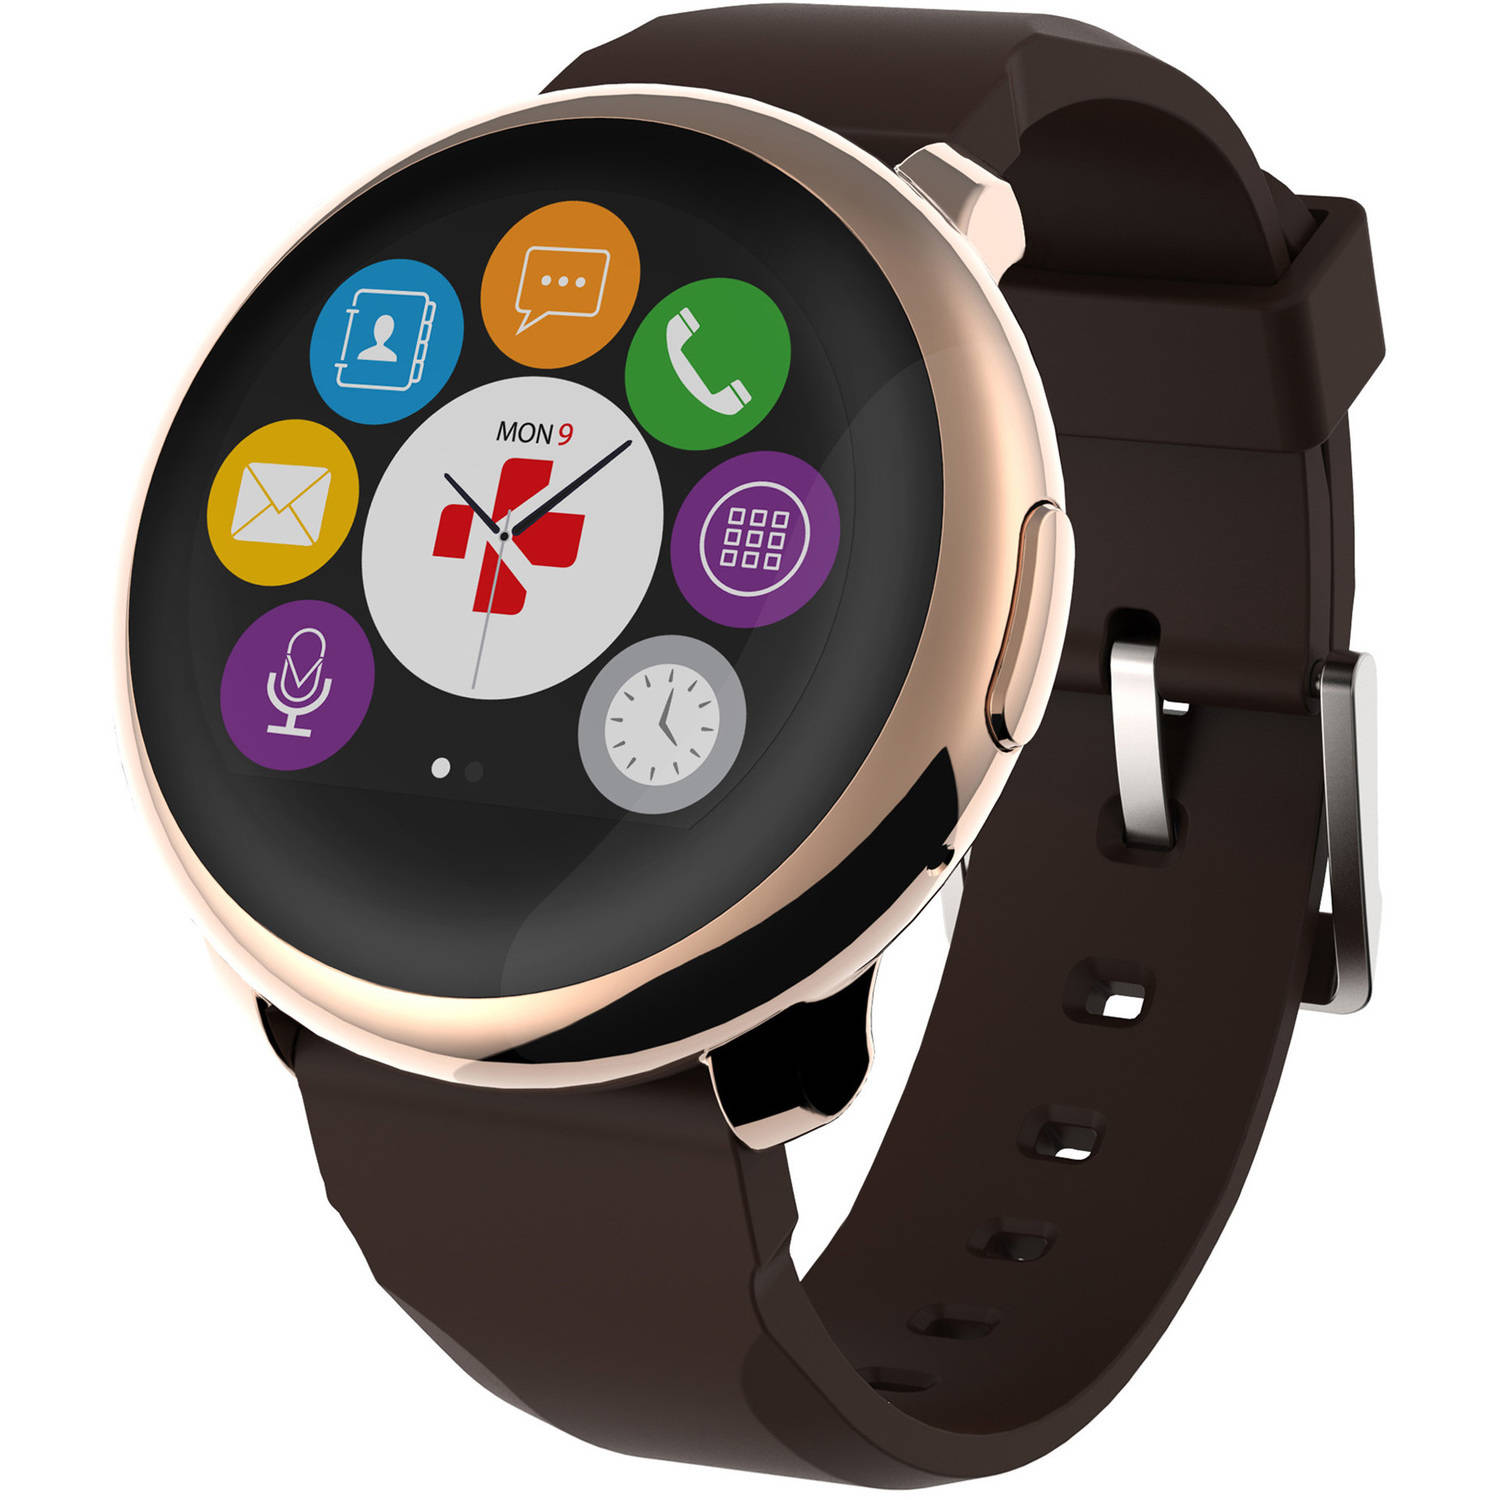 Mykronoz Zeround Smartwatch with Circular Color Touchscreen